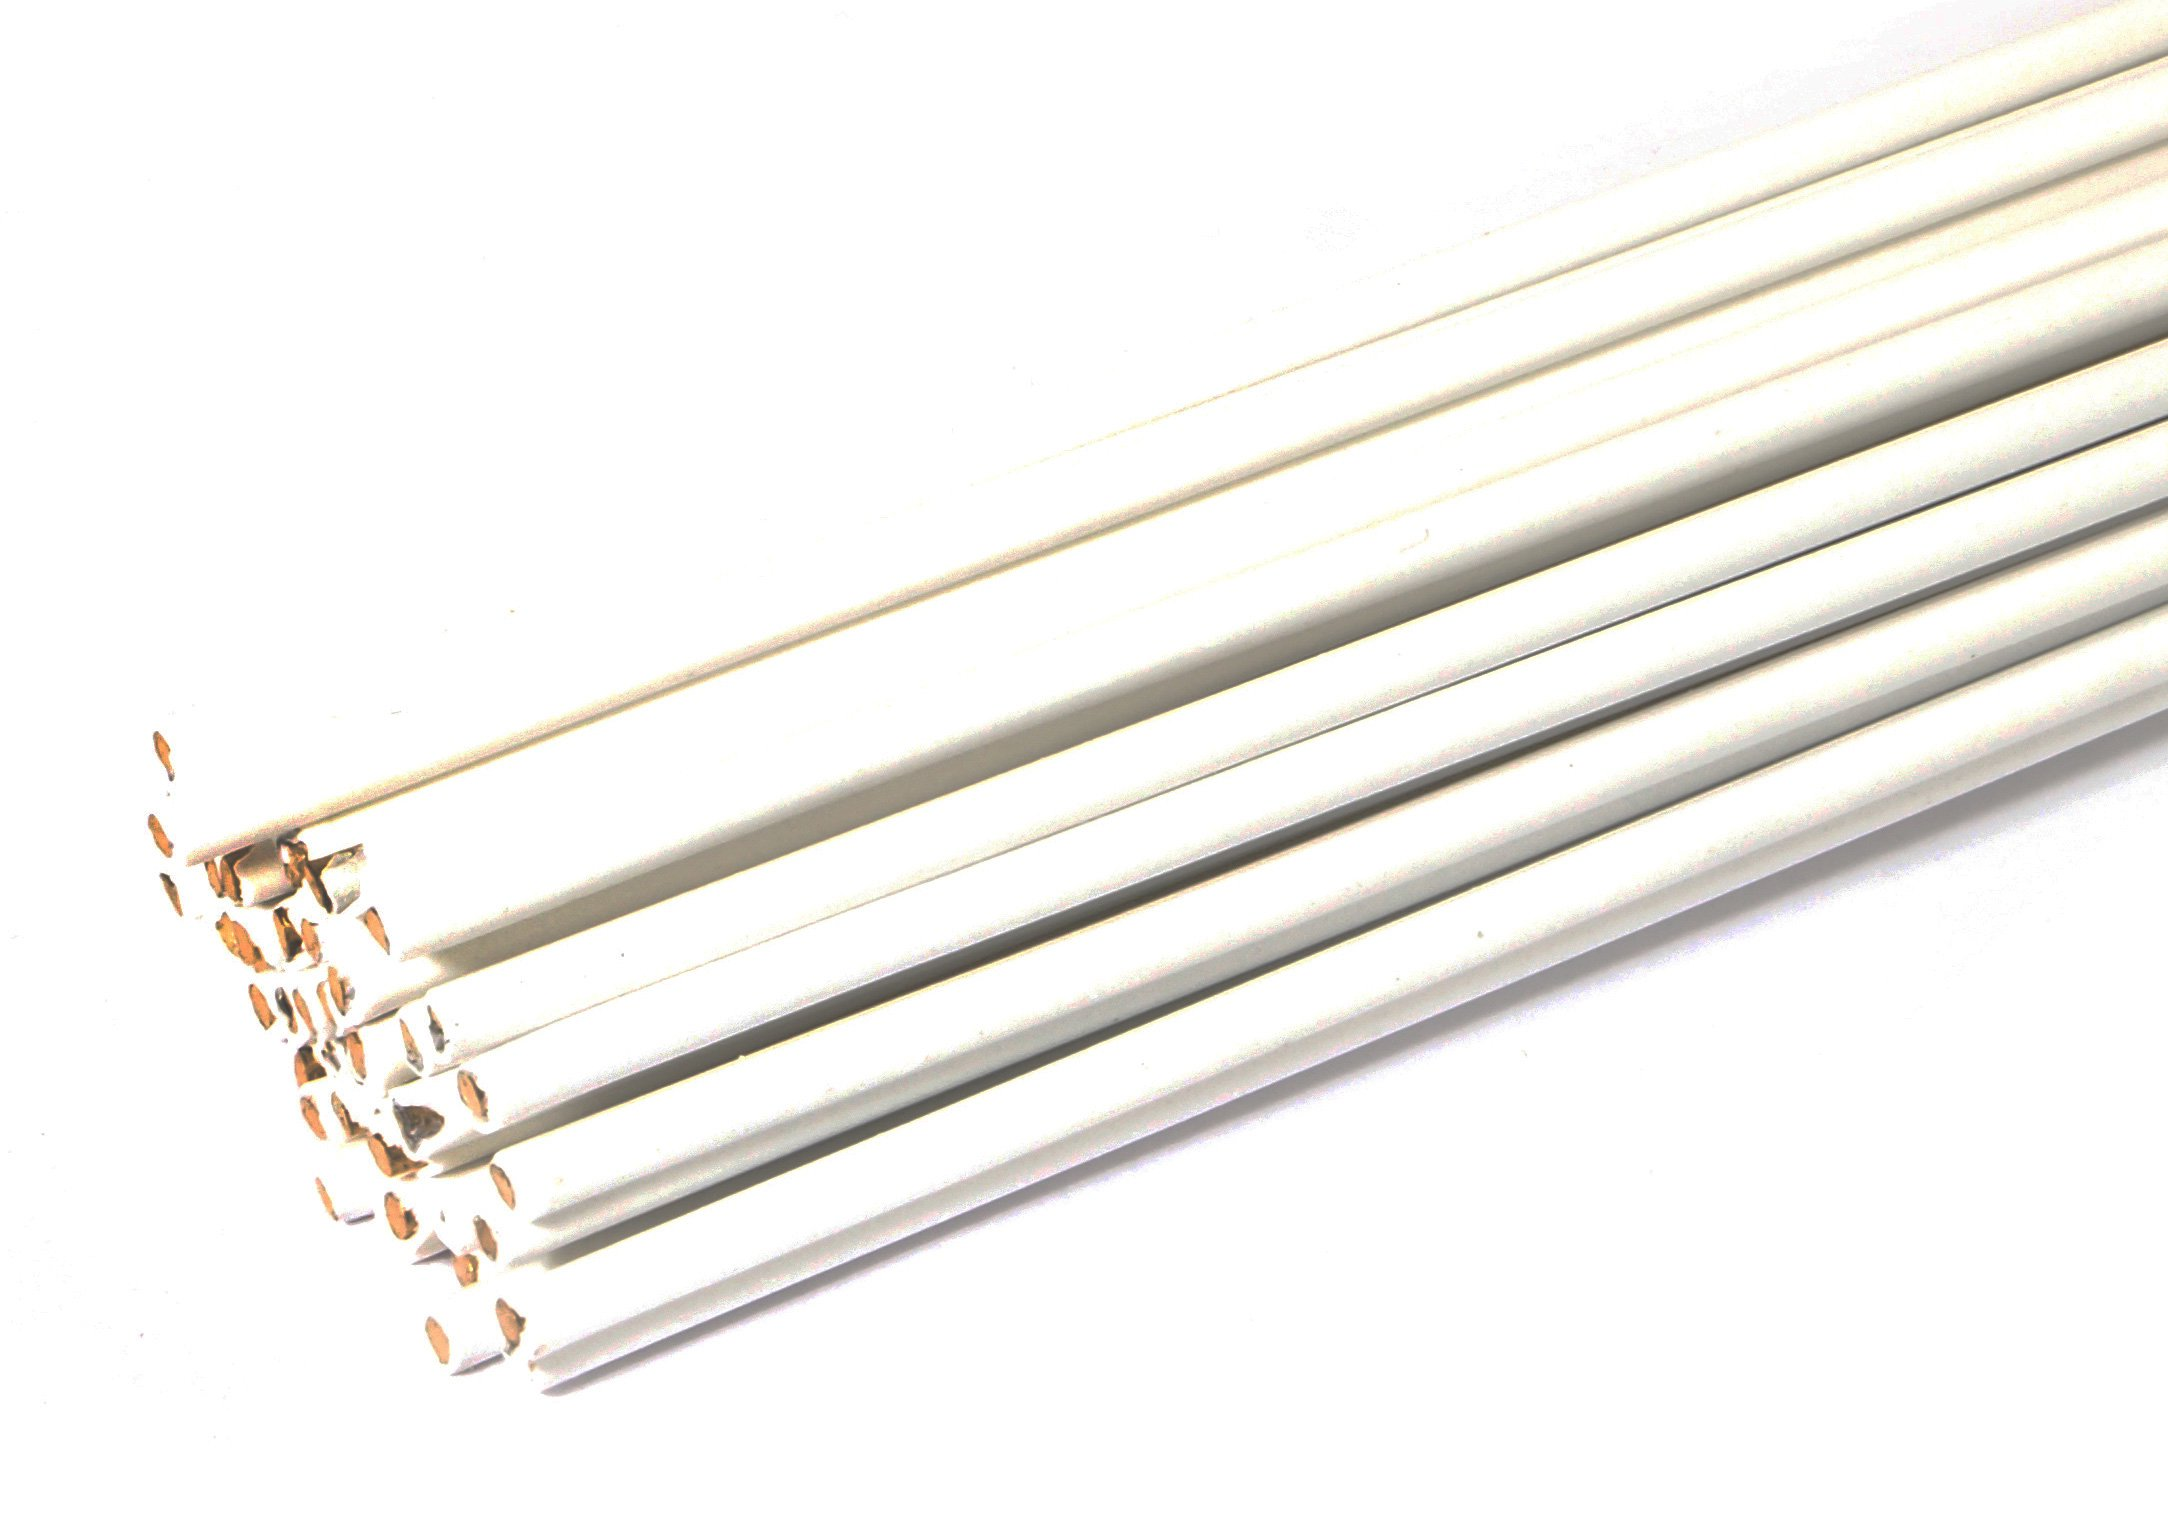 Forney 48504 Flux Coated Bronze Brazing Rod, 1/8-Inch-by-36-Inch, 4-Pounds